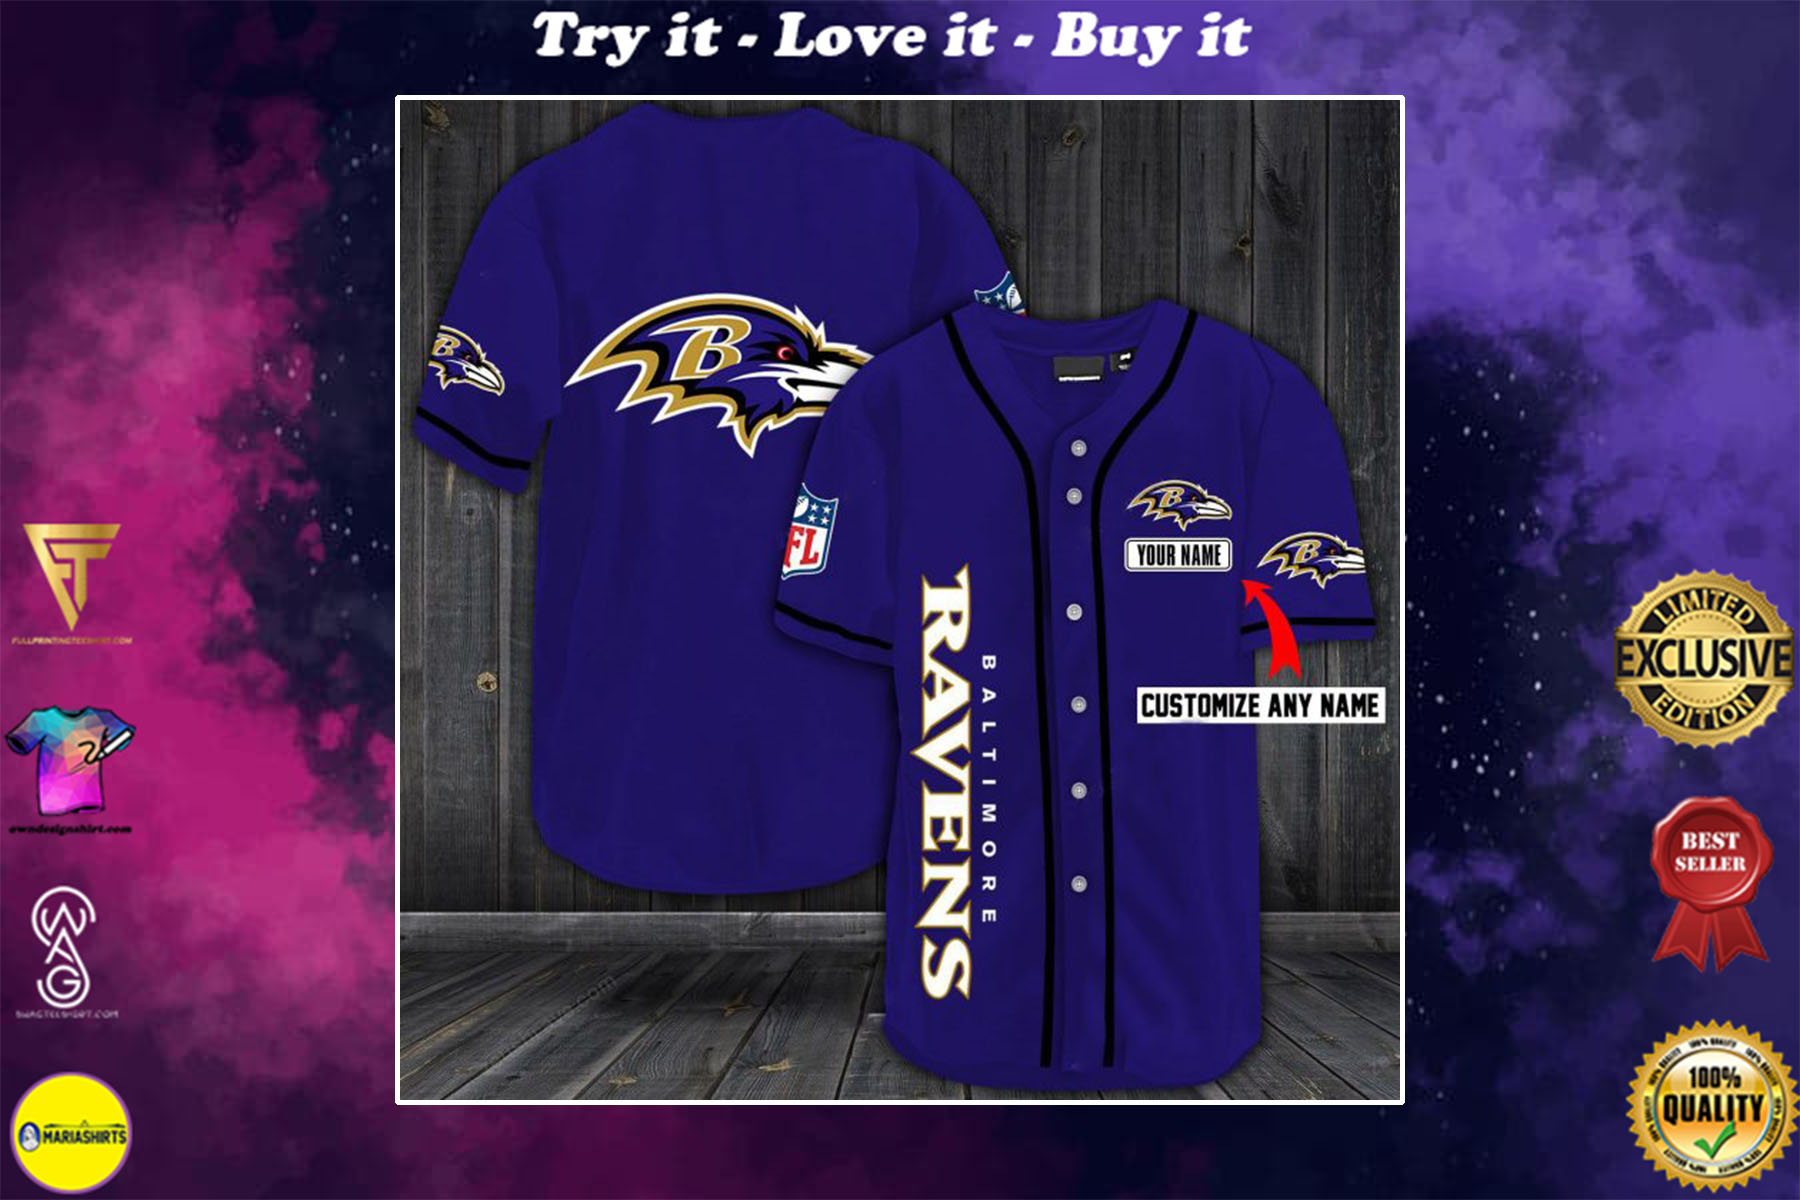 [special edition] personalized name jersey baltimore ravens shirt - maria